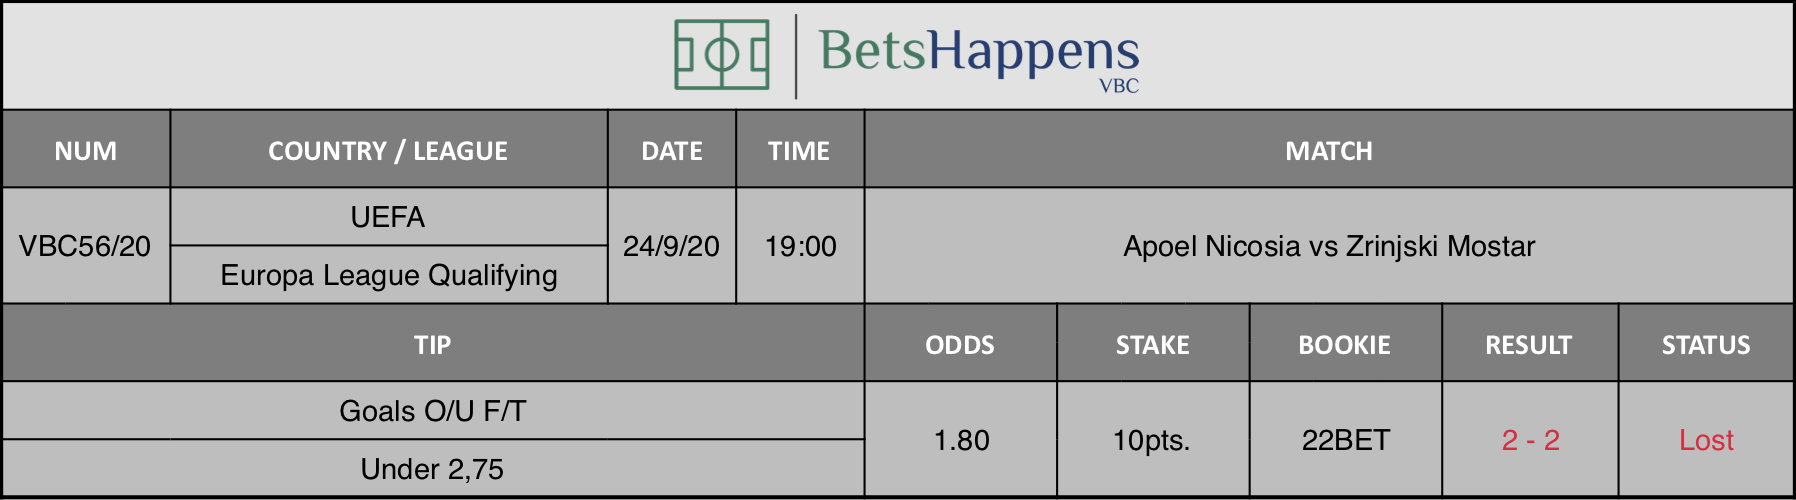 Results of our advice for the Apoel Nicosia vs Zrinjski Mostar match in which Goals O / U F / T Under 2.75 is recommended.